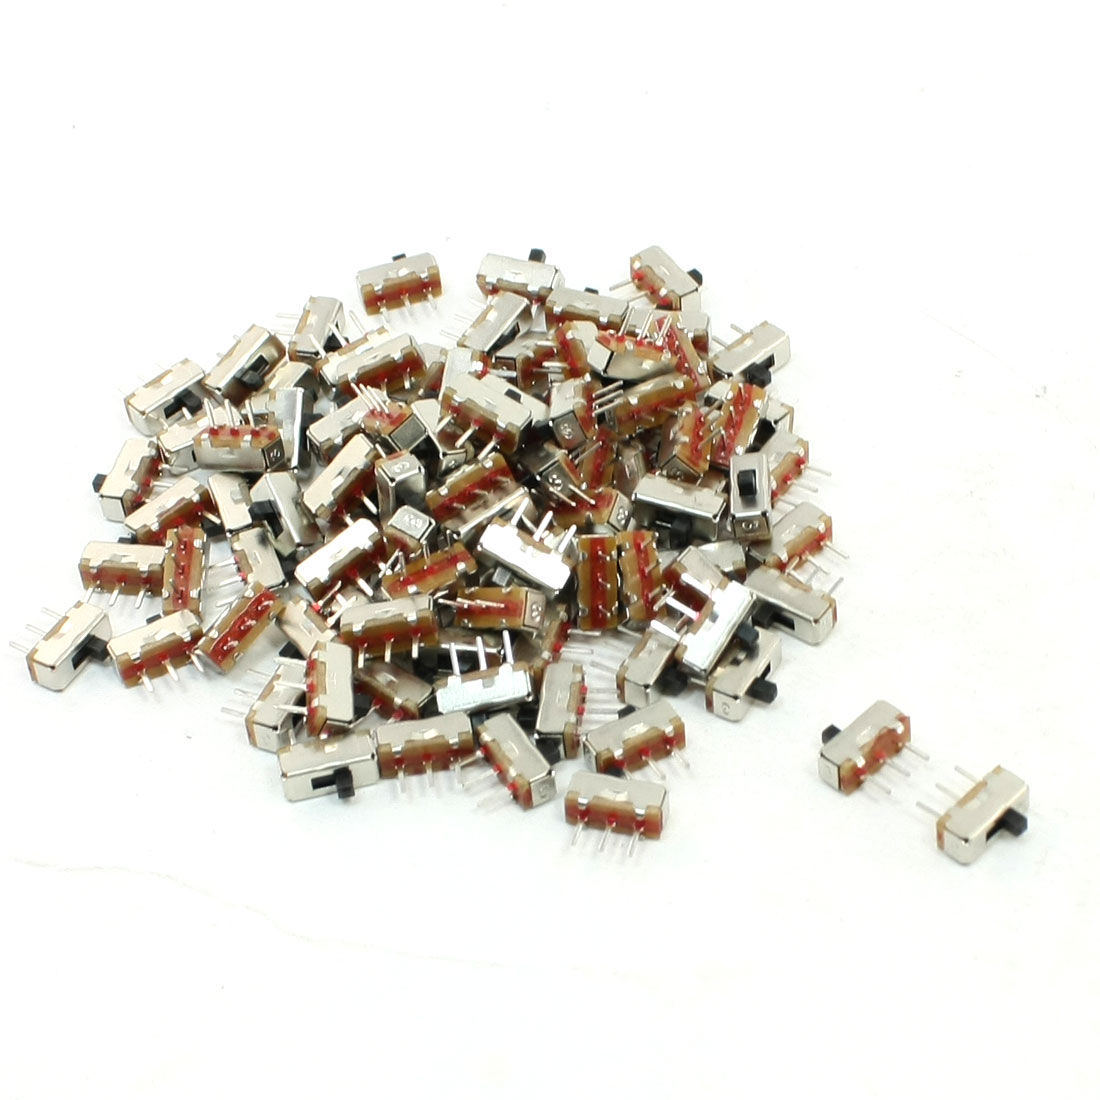 100 Pcs On/Off 3 Pin SPDT Mini PCB DC 50V 0.3A Slide Switch 8mm x 3mm